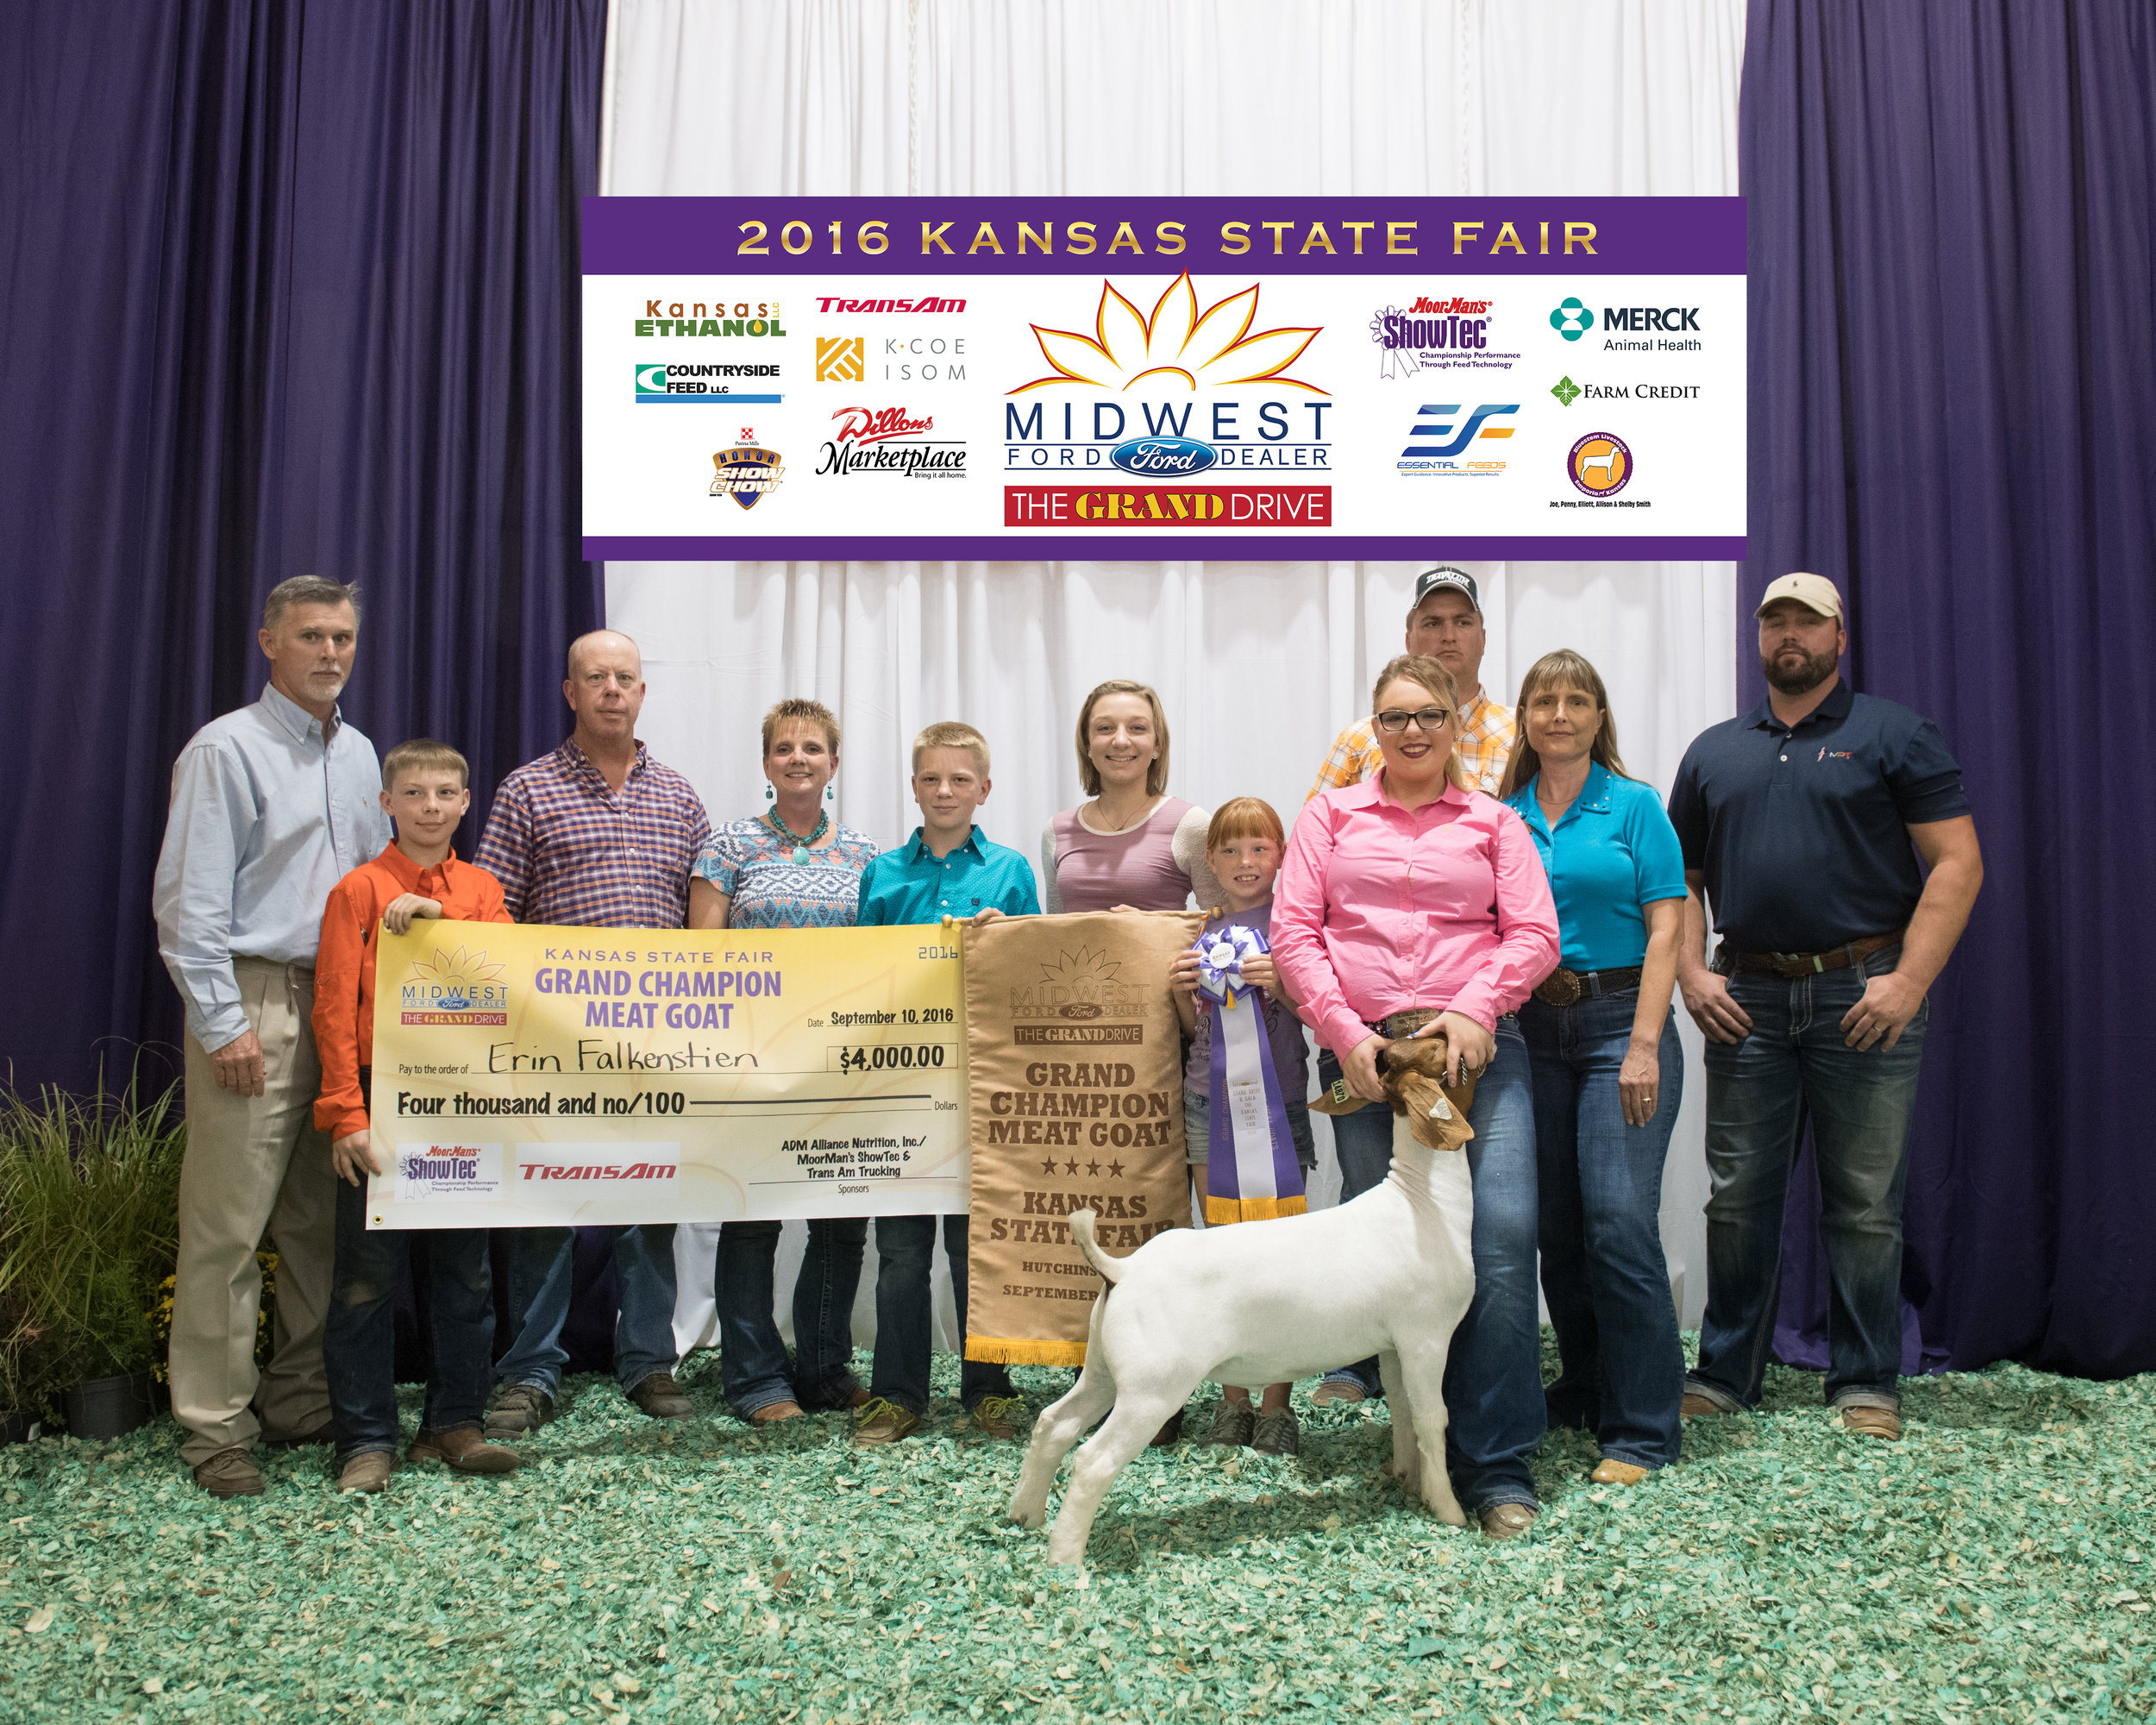 2016 Kansas State Fair Grand Champion Raised by Shrank Show Goats. We are using these genetics in our 2017 kidd crop.